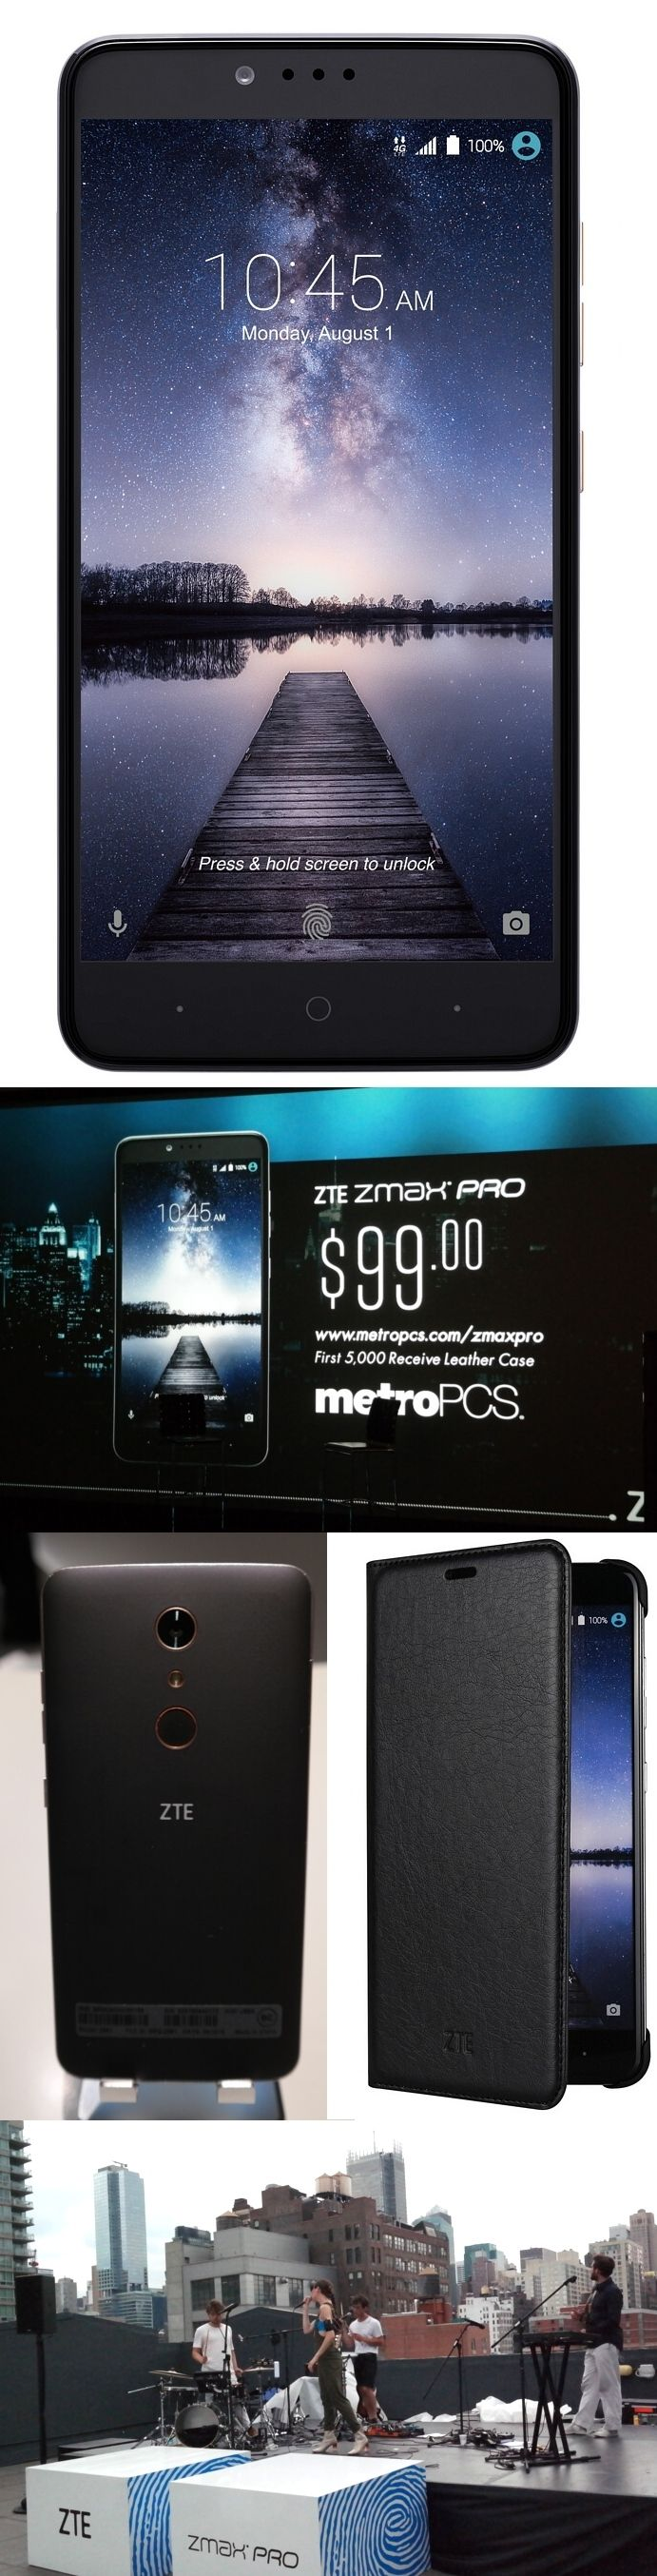 Zte Zmax Pro For Metropcs: Big Android 60 Muscle Phone For Just $99 With  What Screenshot_20121114074827 Screenshot_20161223230748g